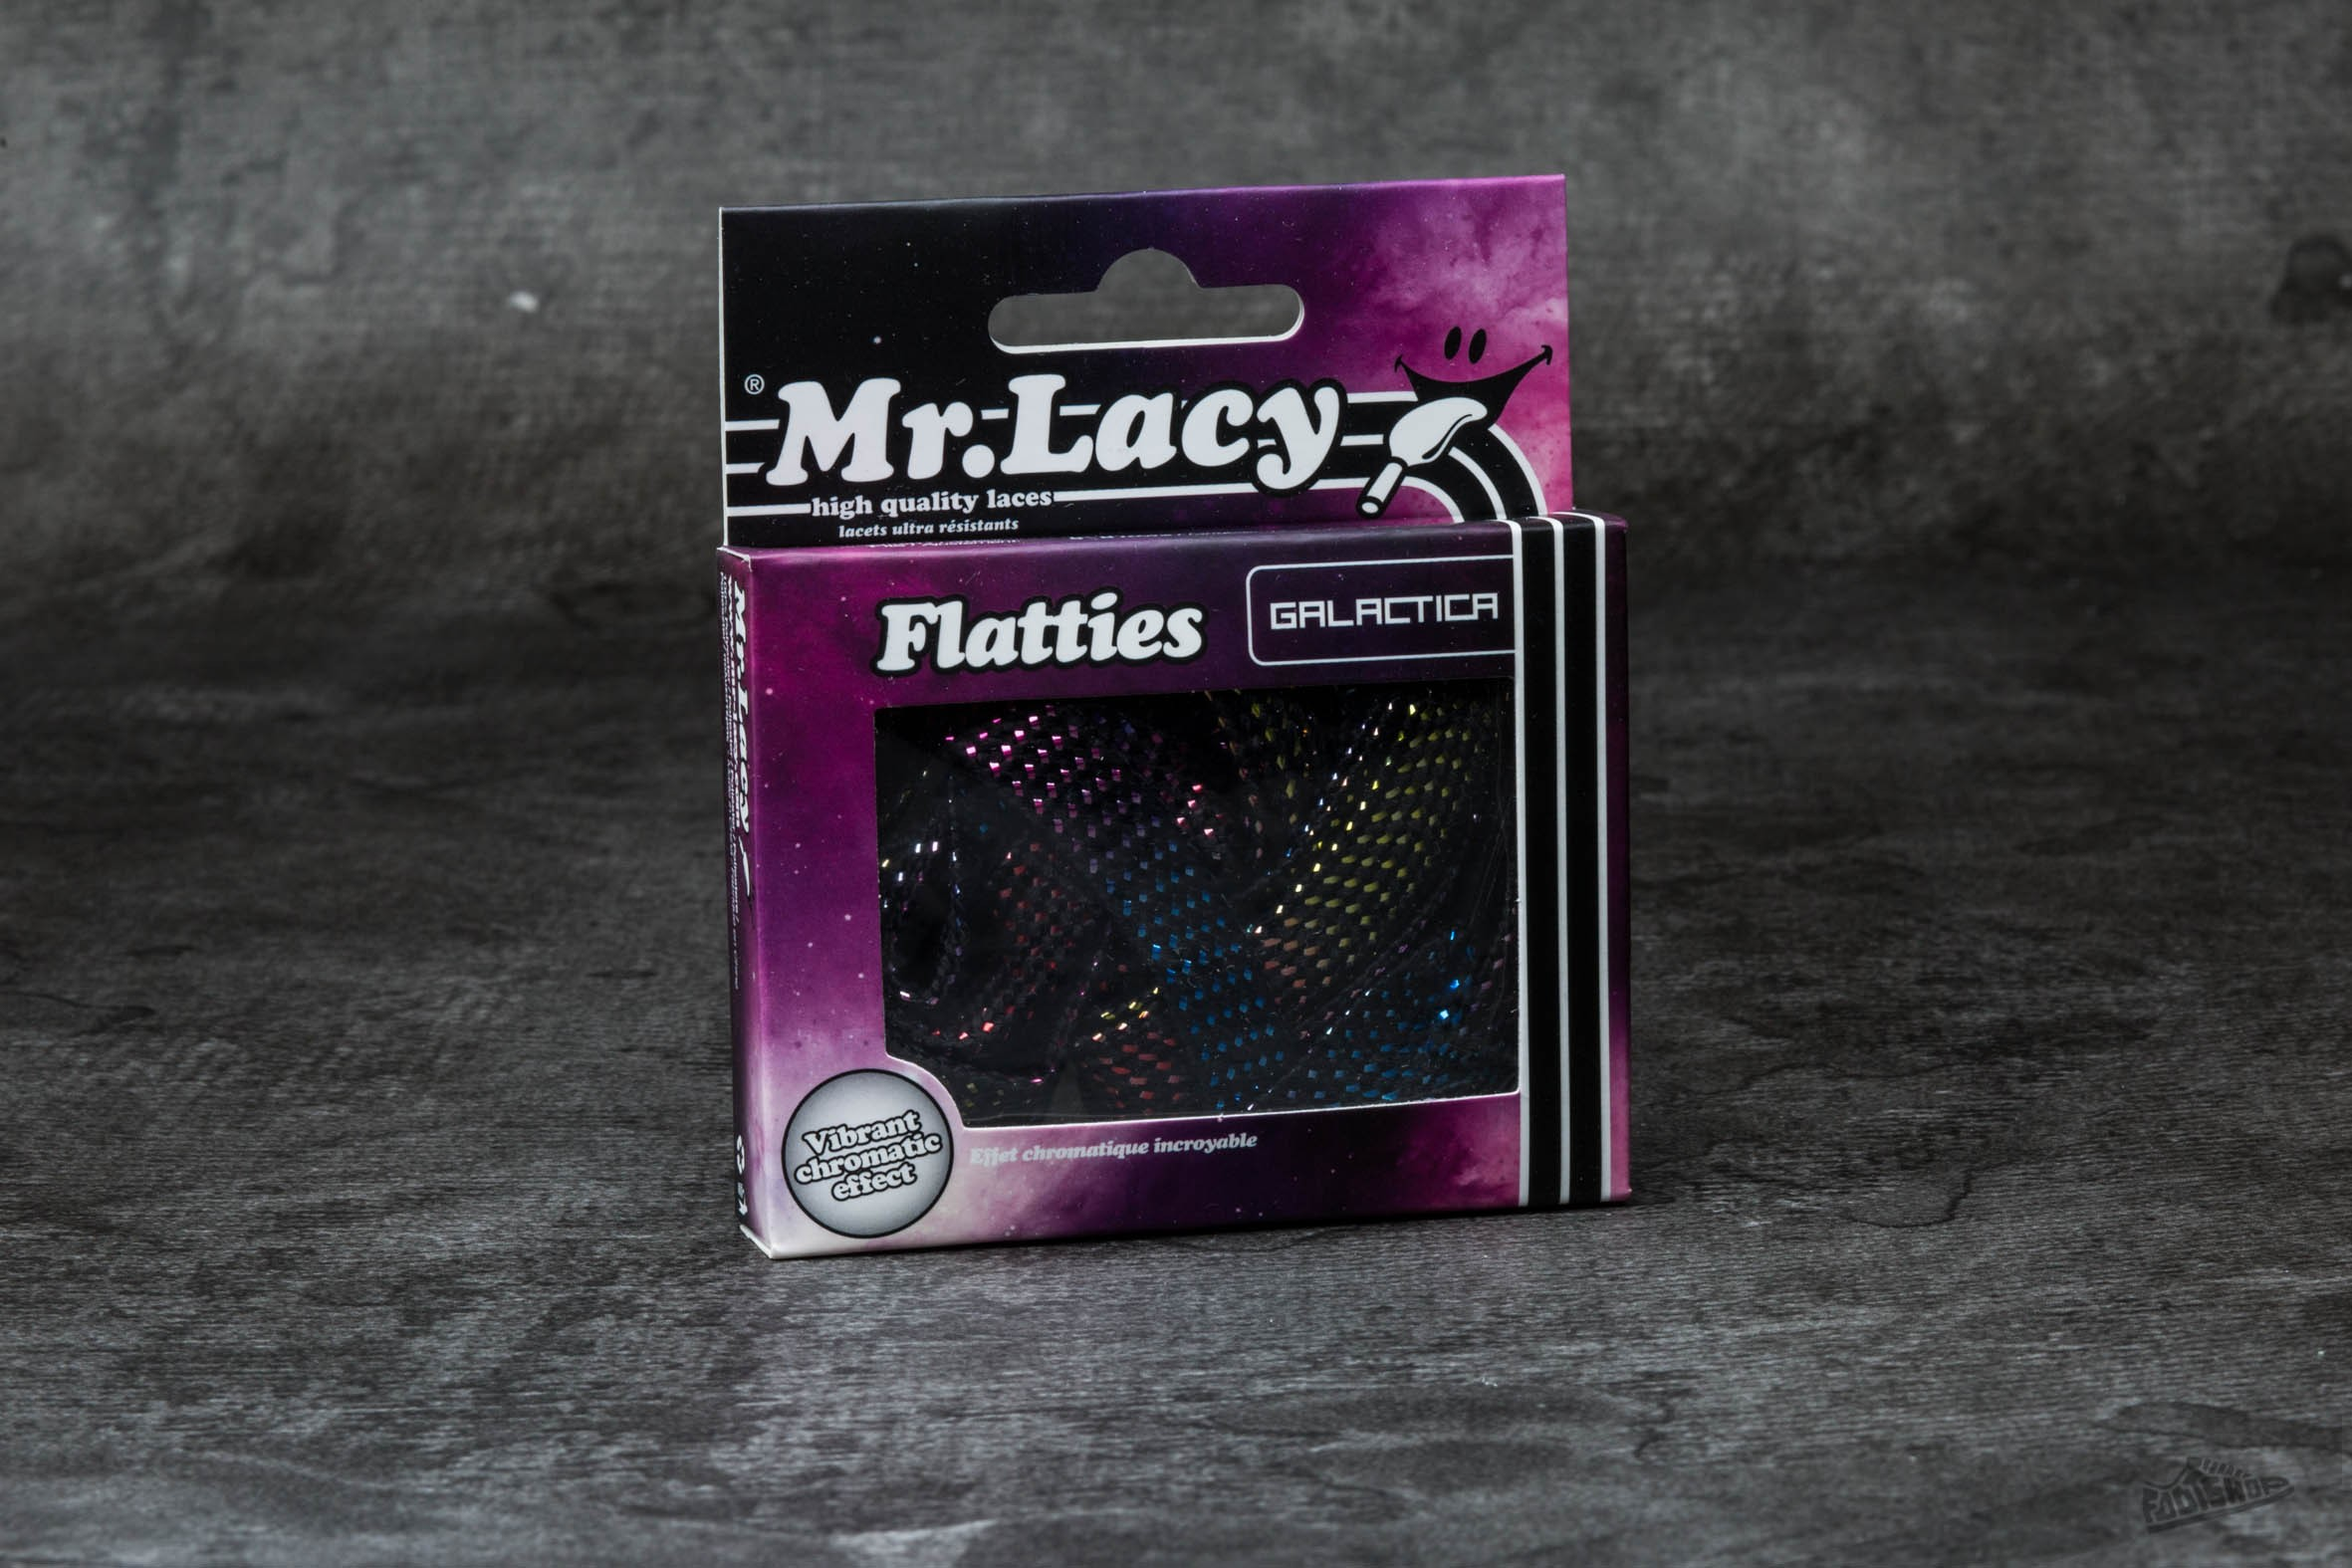 Mr.Lacy Flatties Galactica